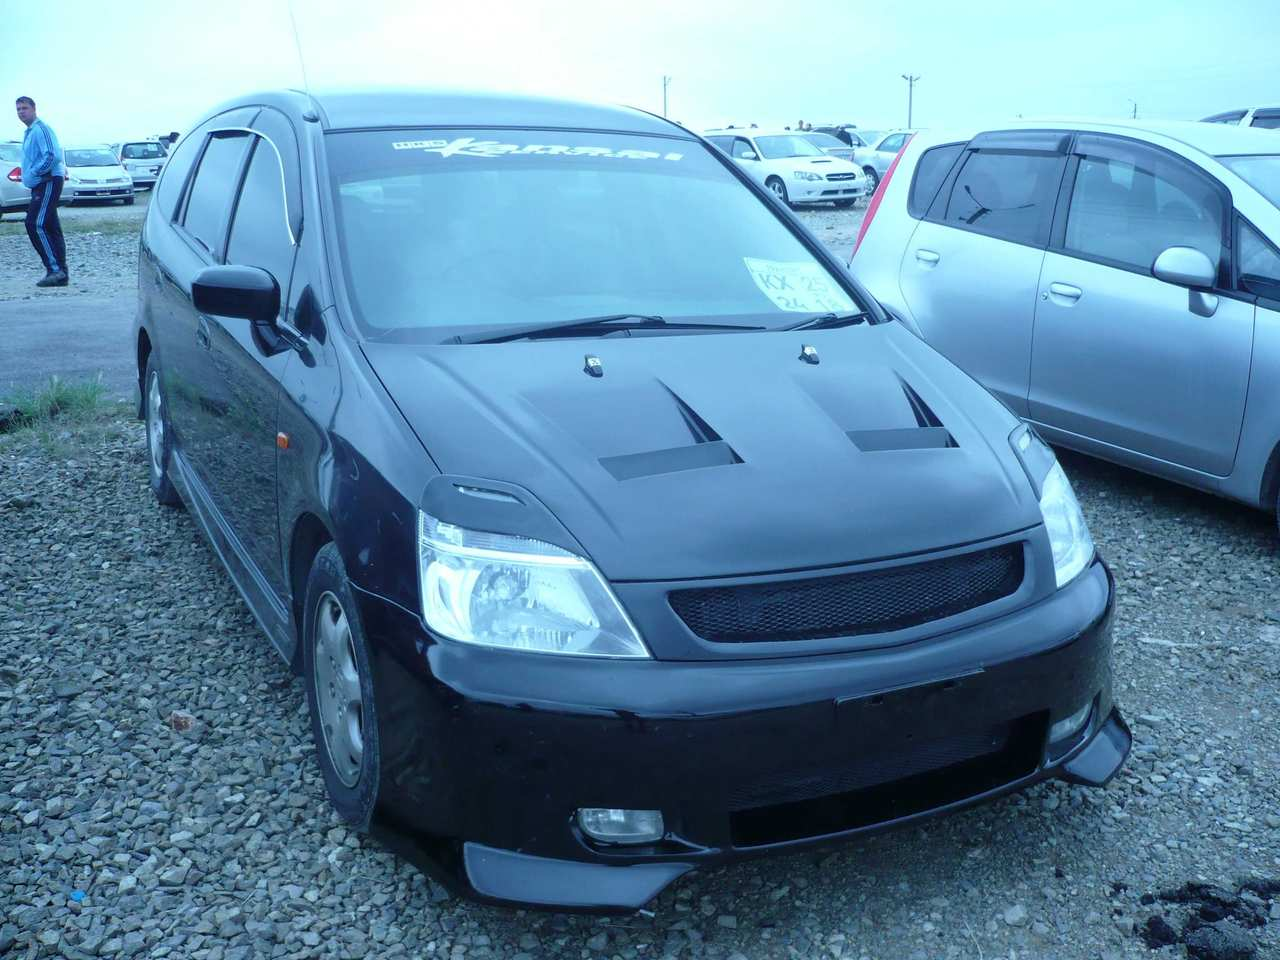 Used 2002 Honda Stream Photos, 1700cc., Gasoline, FF ...